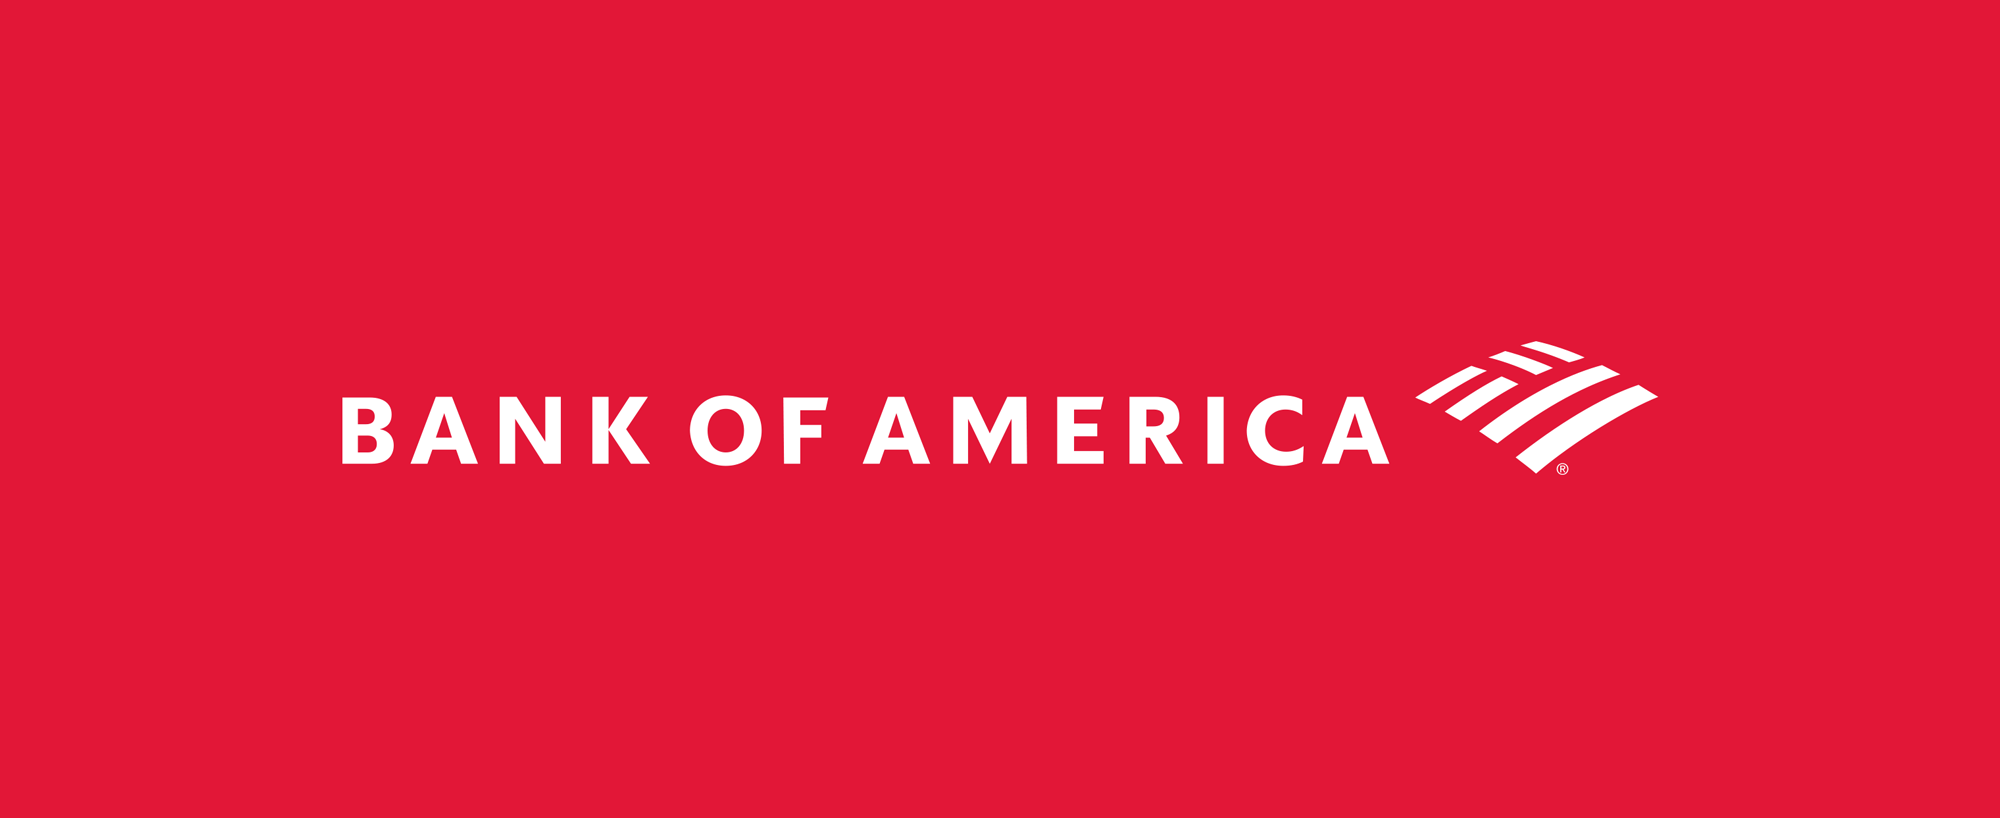 Brand New New Logo for Bank of America by Lippincott